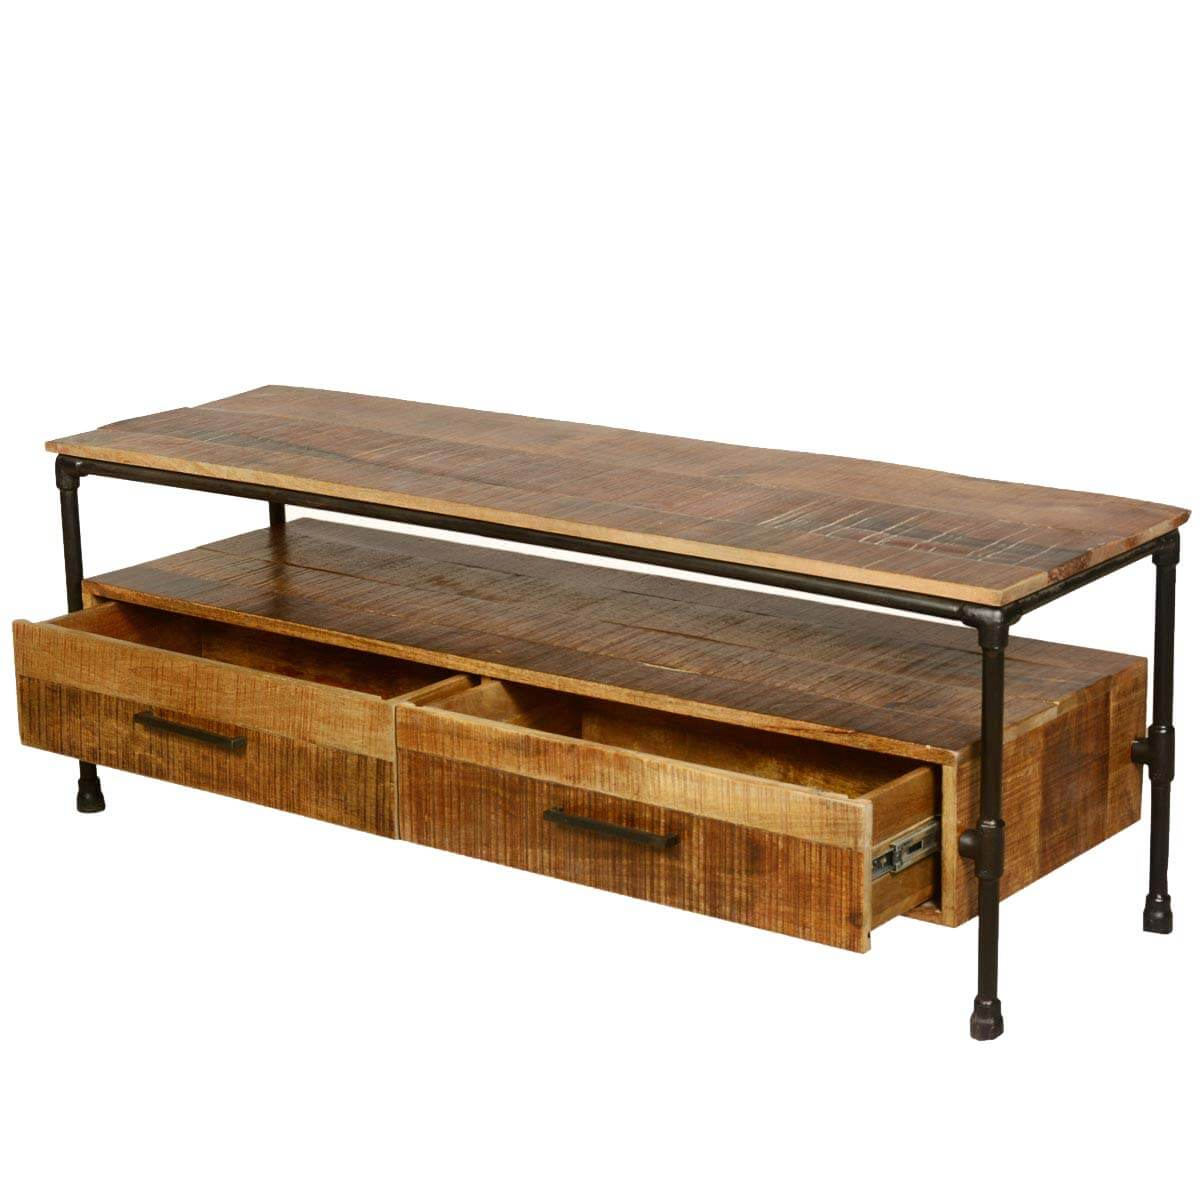 Reclaimed Wood Dining Table together with Small Cozy Living Room Decorating Ideas additionally Formal Dining Room Furniture Sets further Modern Solid Wood Dining Table in addition Rustic Baby Crib Furniture. on rustic wood bedroom sets